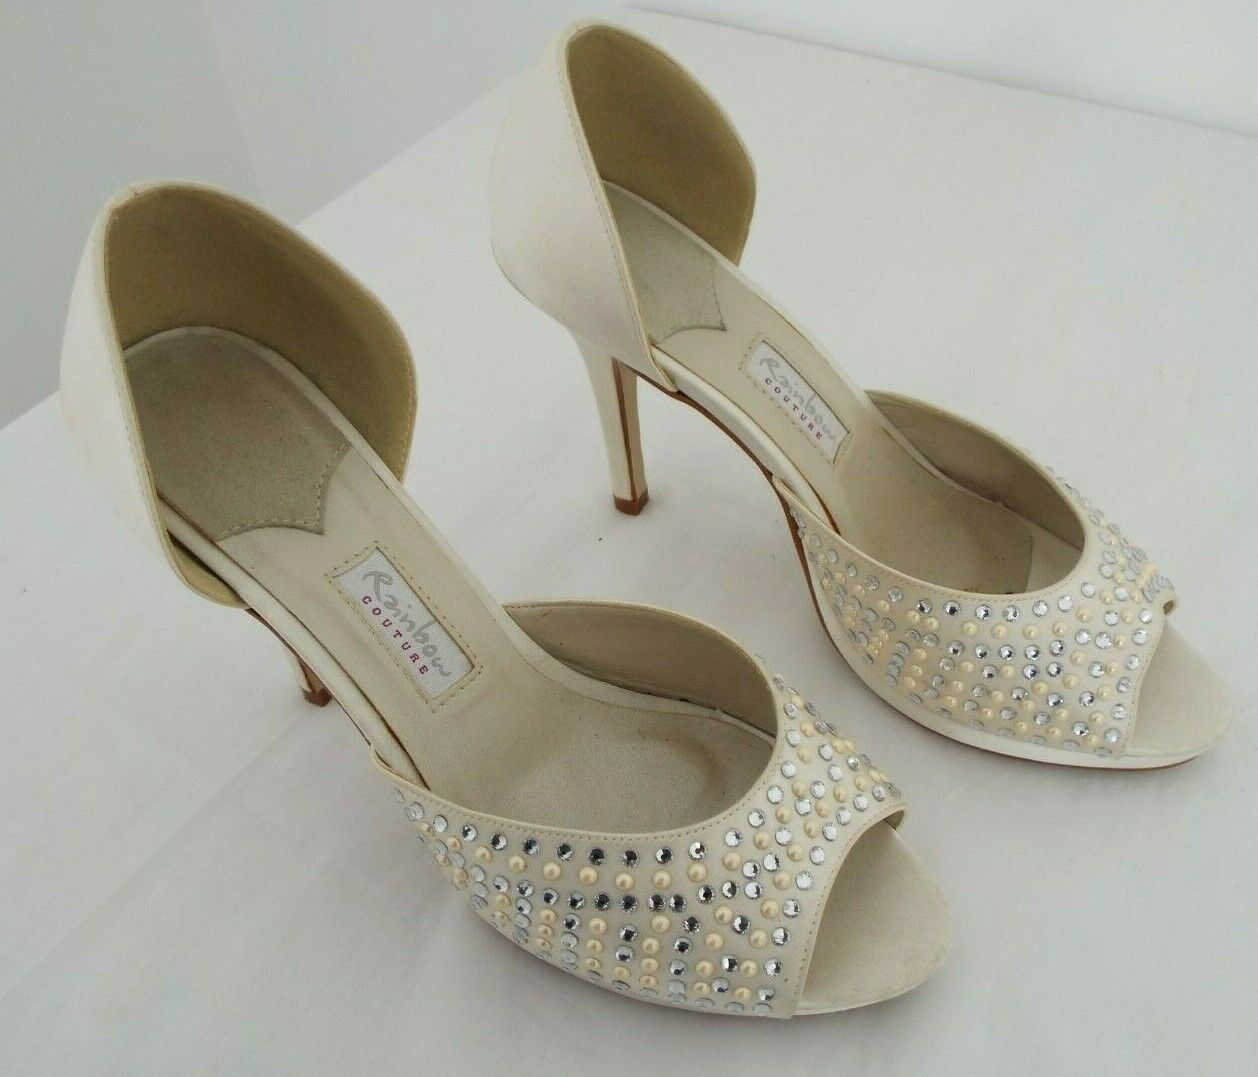 Rainbow couture bridal shoes size 6